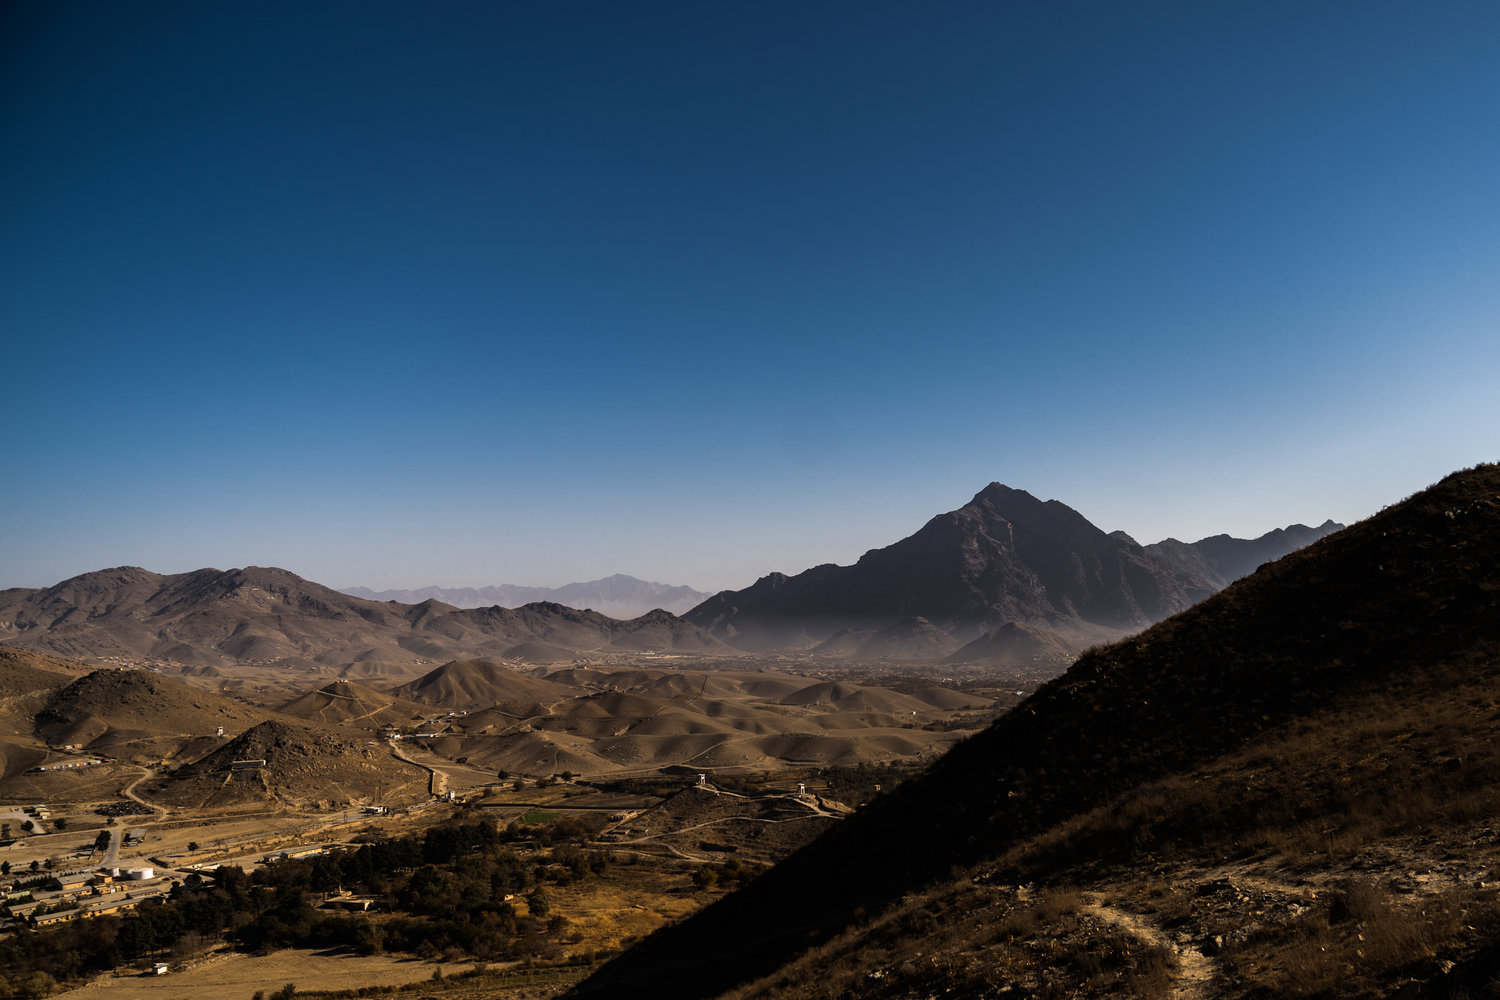 From my vantage point on a ridge just above Camp Morehead, I had a stunning view of the mountains that surround Kabul.